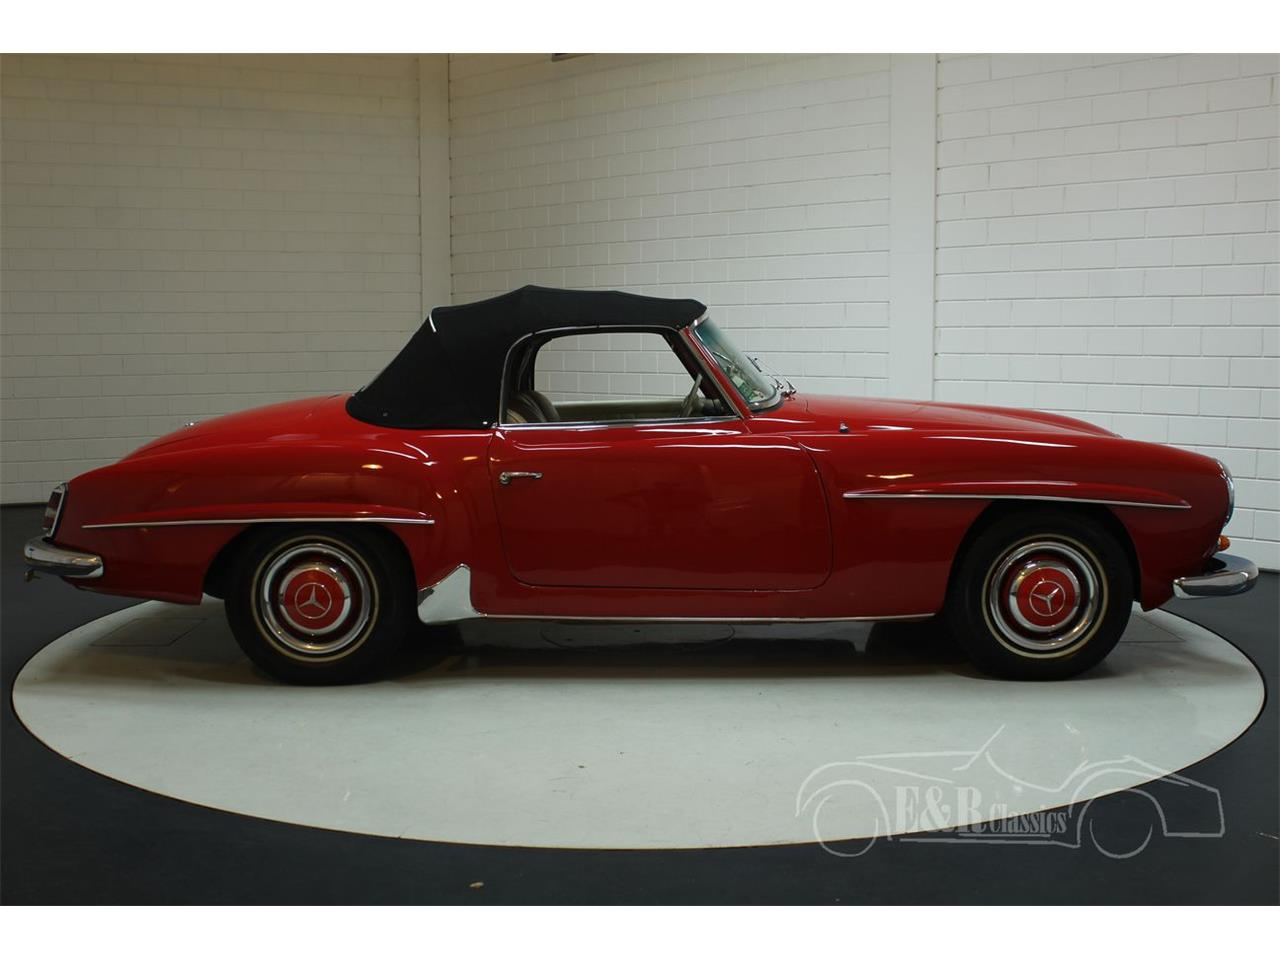 Large Picture of Classic '56 Mercedes-Benz 190SL located in Waalwijk - Keine Angabe - Offered by E & R Classics - PH44